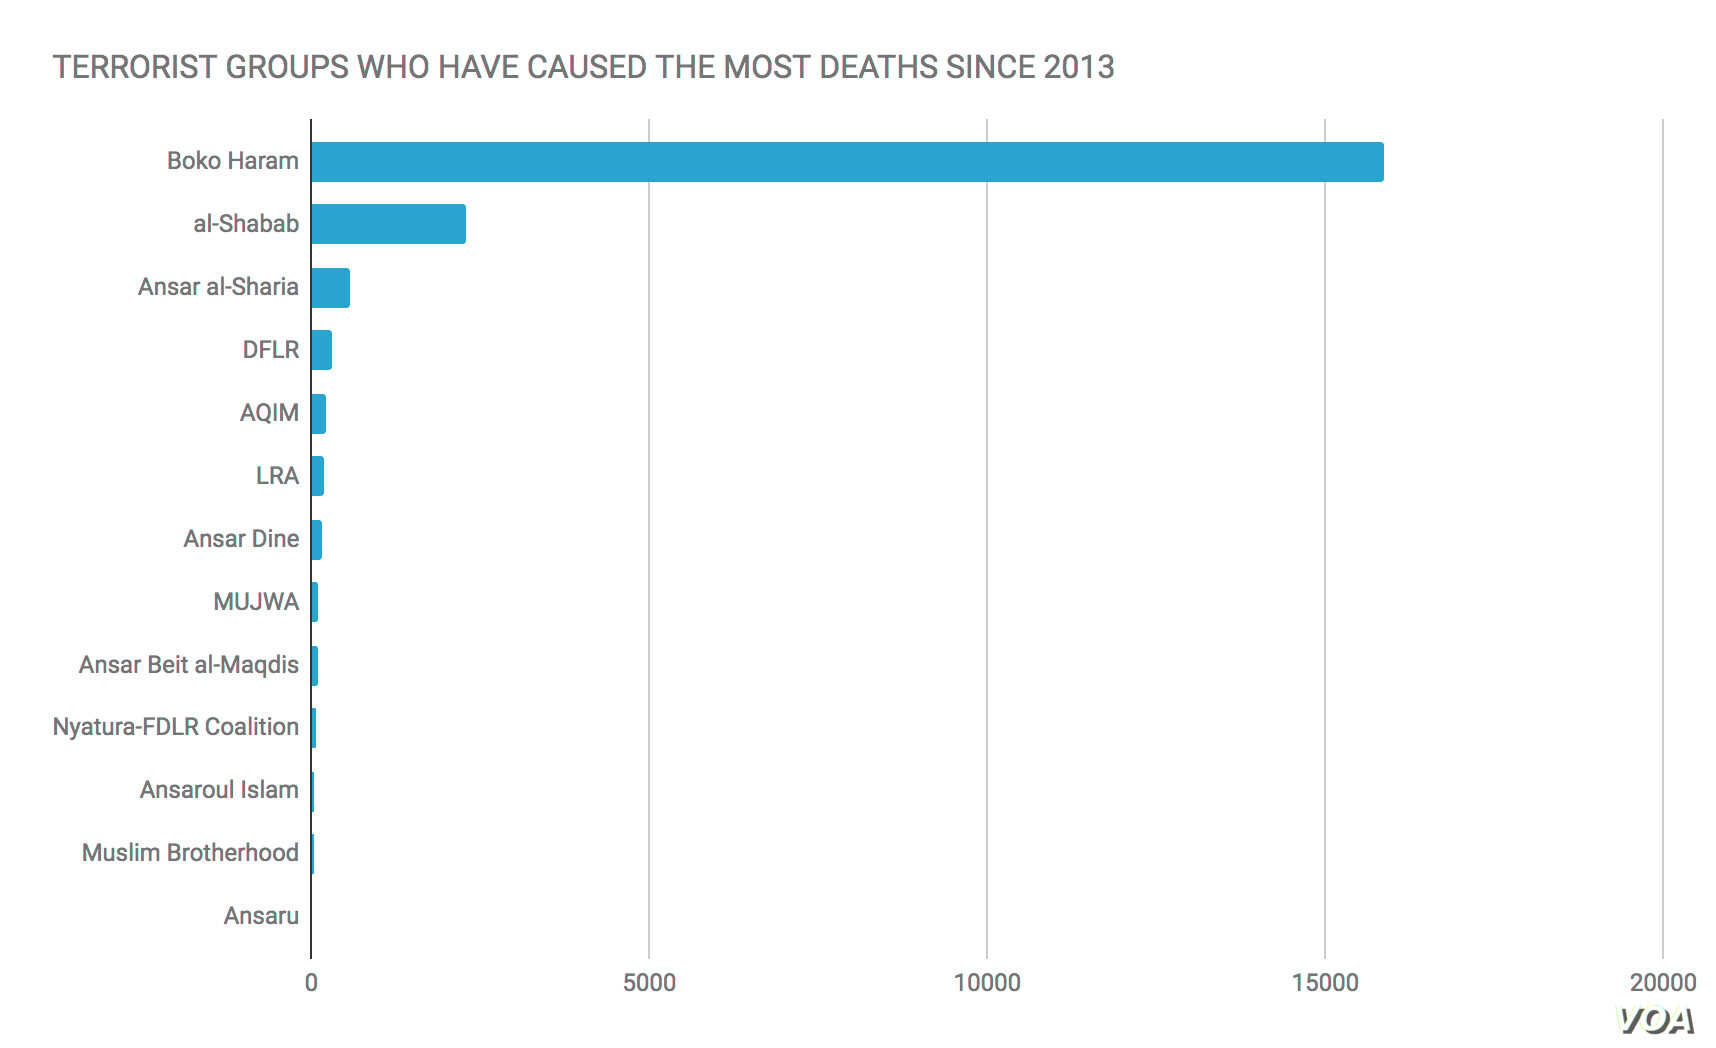 Terrorism Deaths: Terrorist Groups That Have Caused the Most Deaths in Africa Since 2013